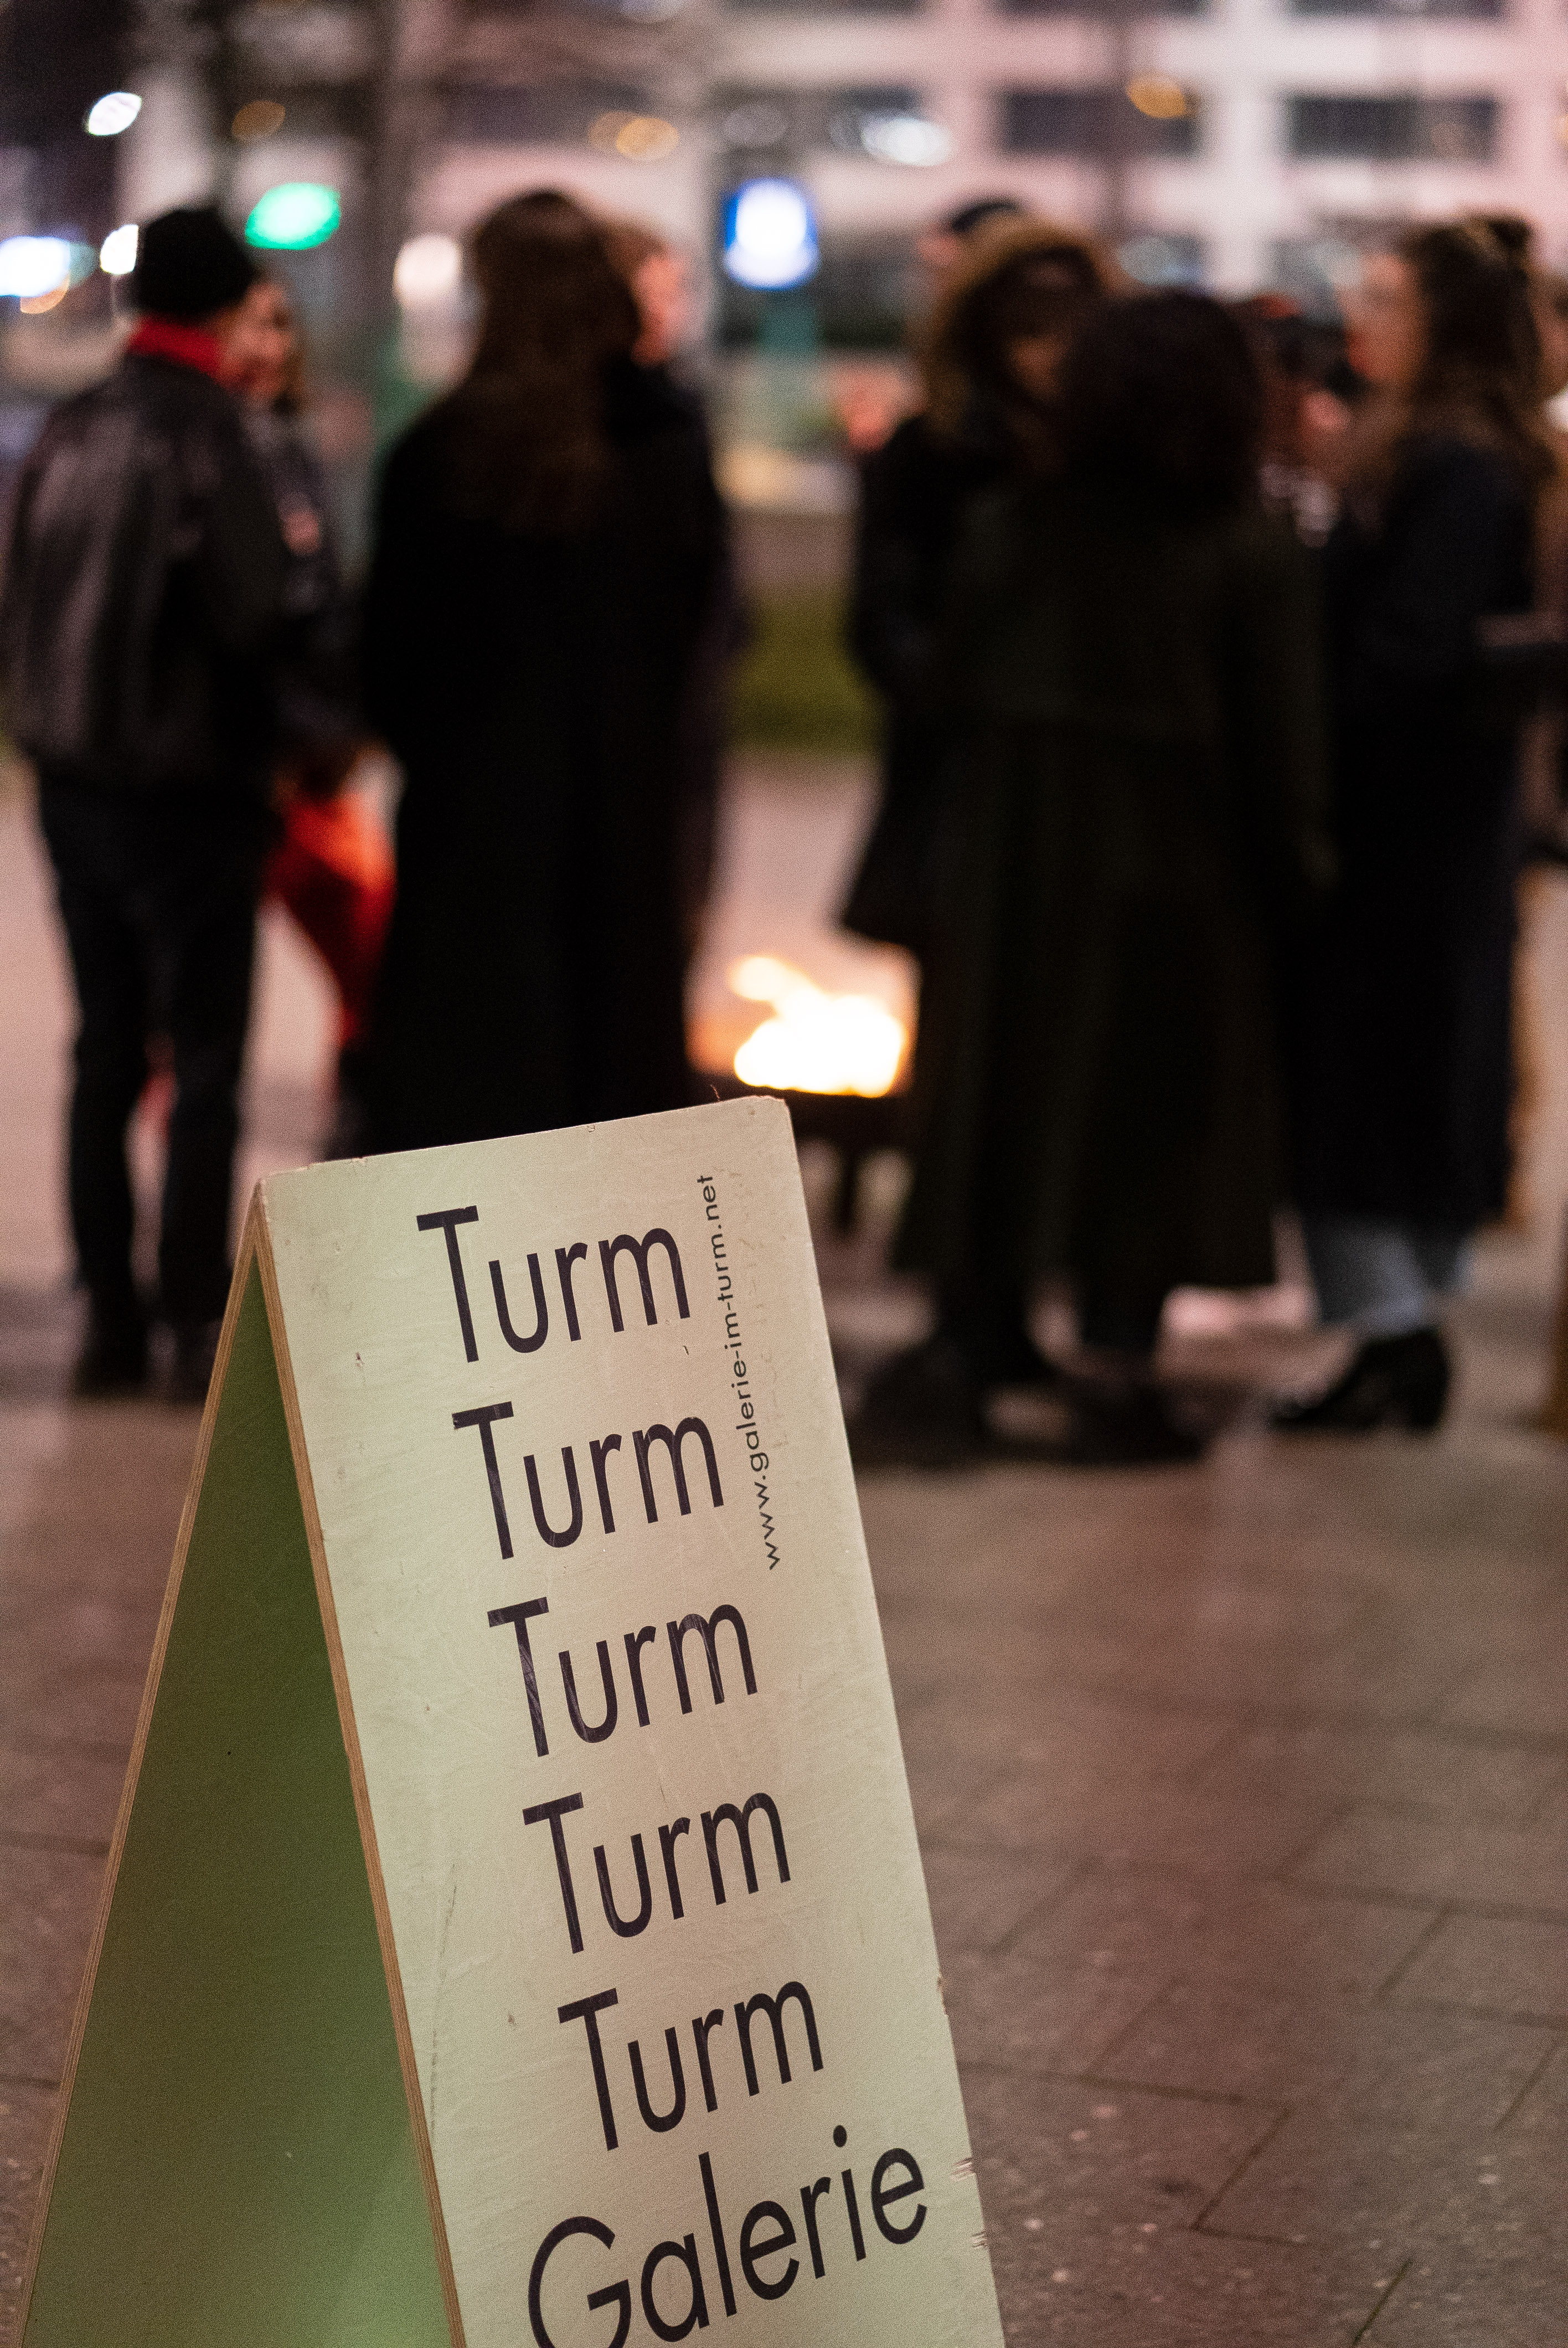 The photo shows in the foreground a sandwich-board sign for the exhibition location, Galerie im Turm. It is evening. In the background in the blur, people stand around a fire bowl.